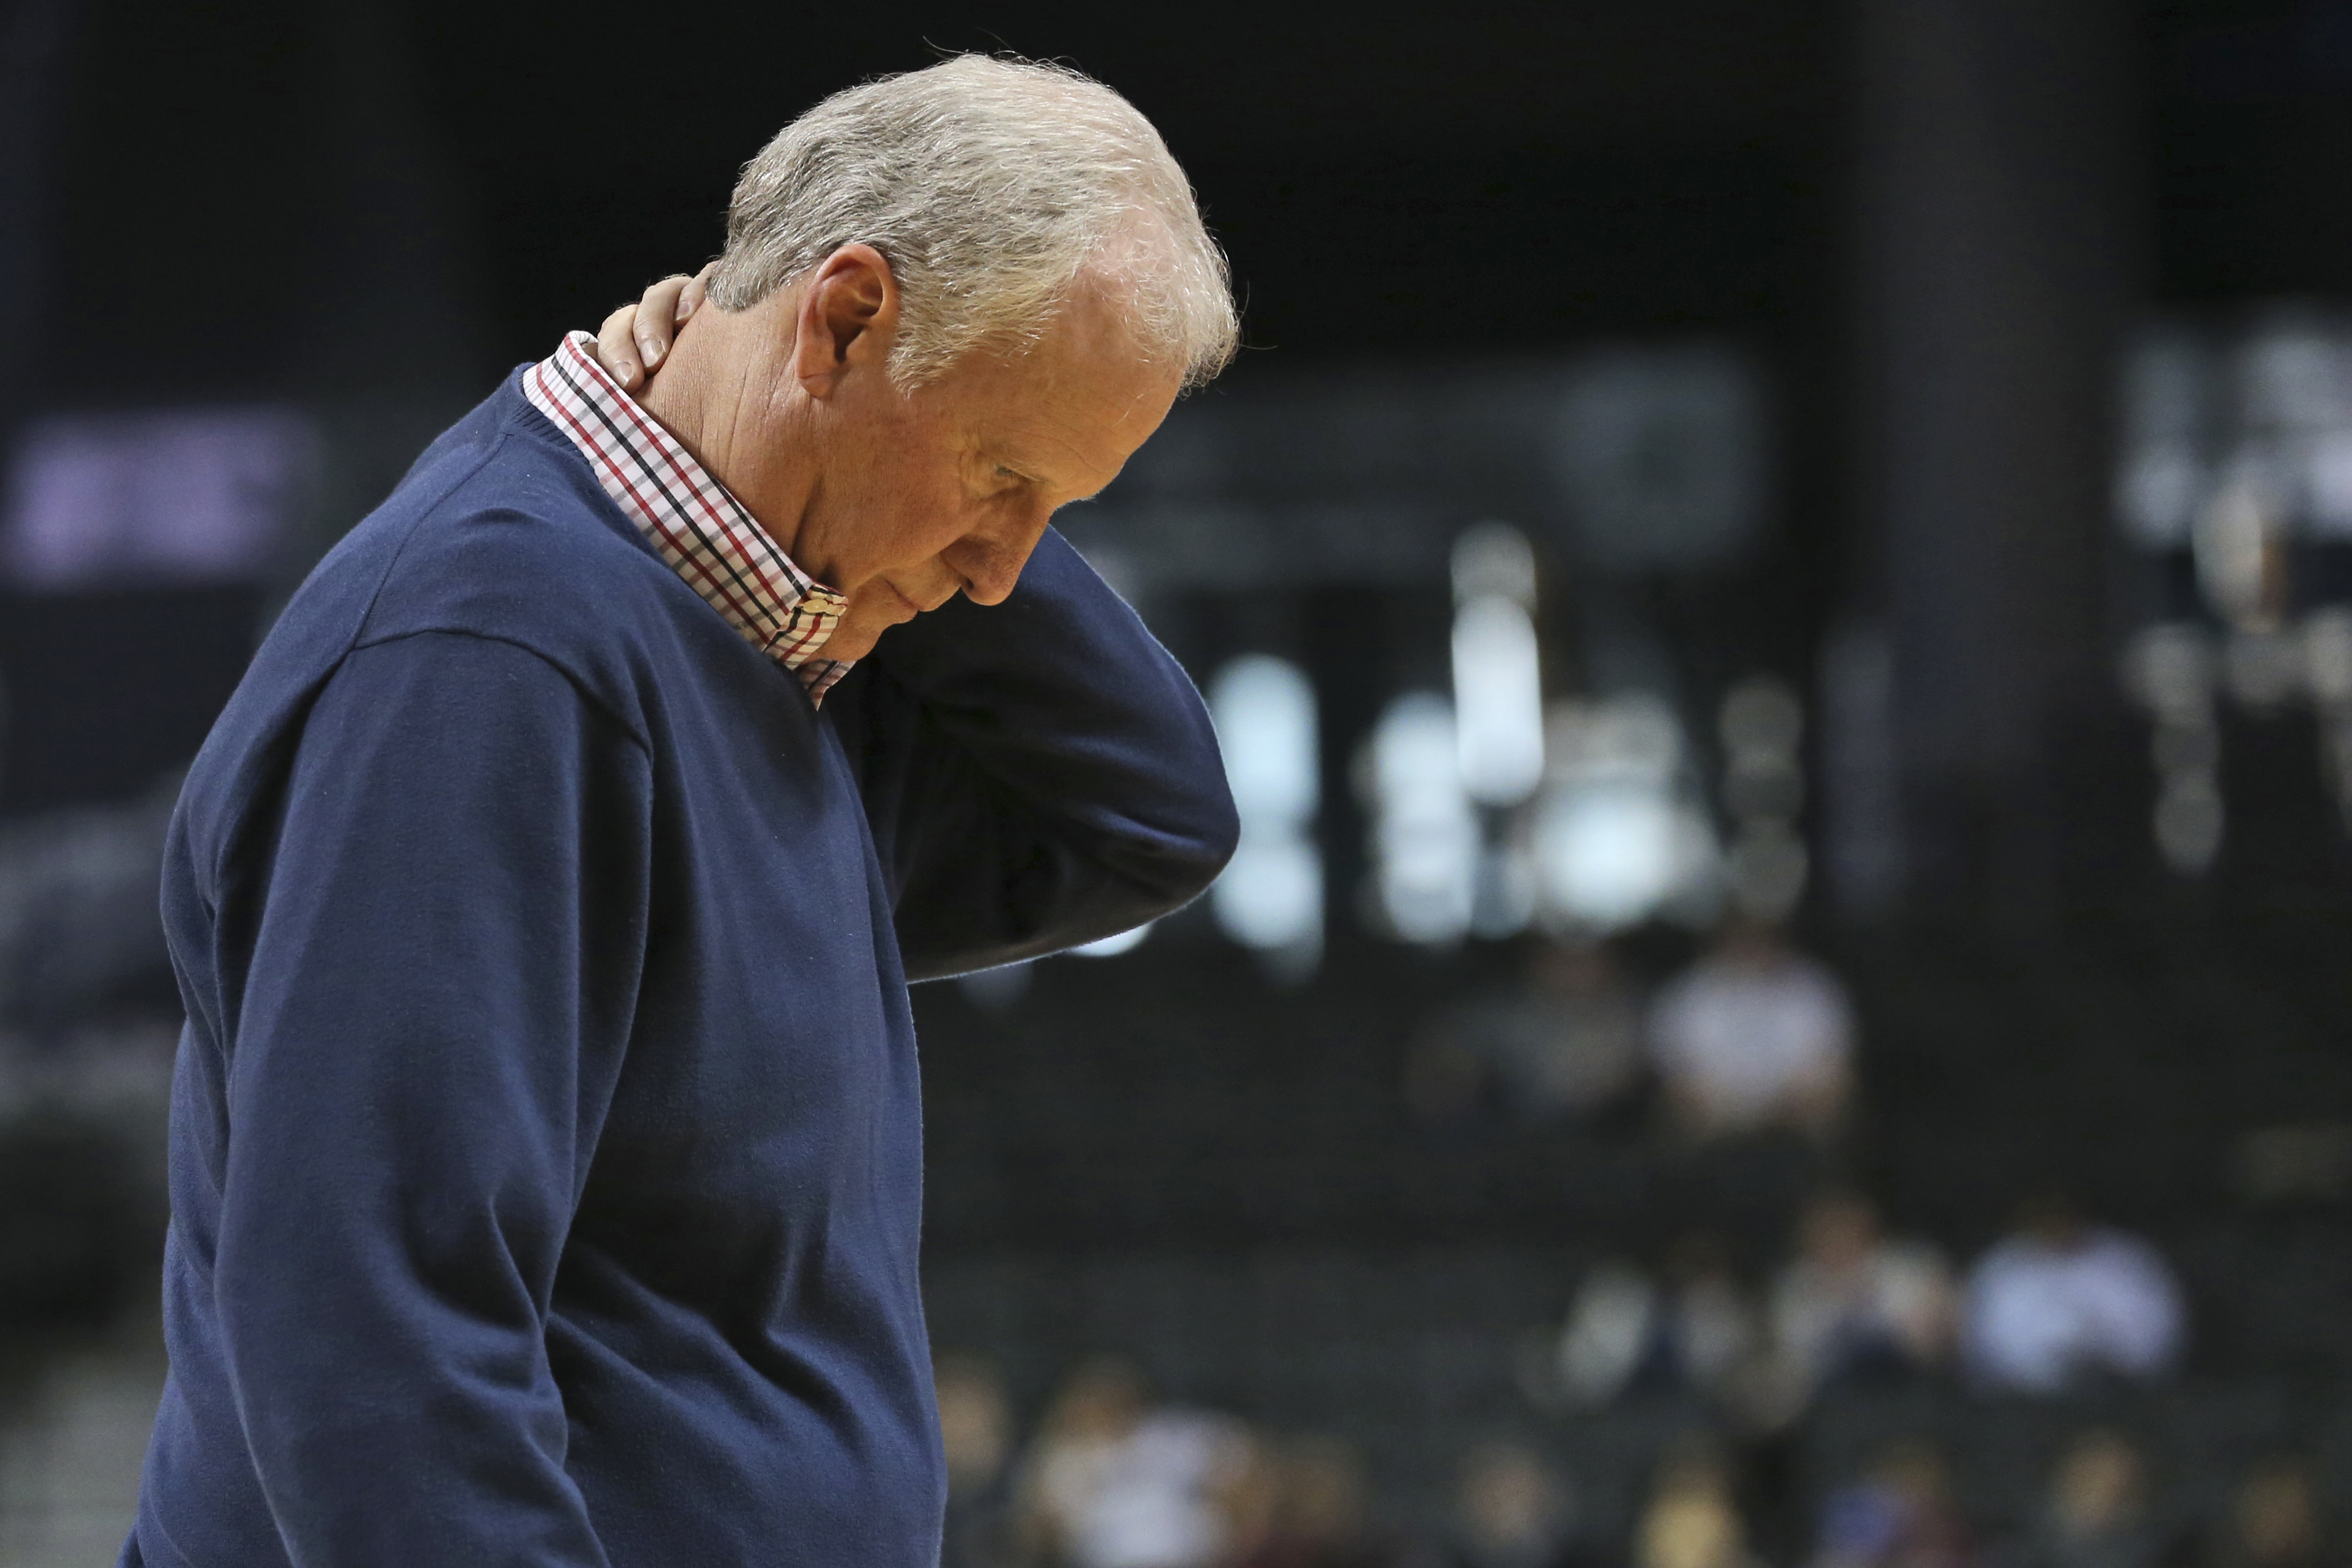 Saint Louis coach Jim Crews reacts to a play during the second half of the team's NCAA college basketball game against George Washington in the Atlantic 10 men's conference tournament, Thursday, March 10, 2016, at New York. Crews was fired after the team'